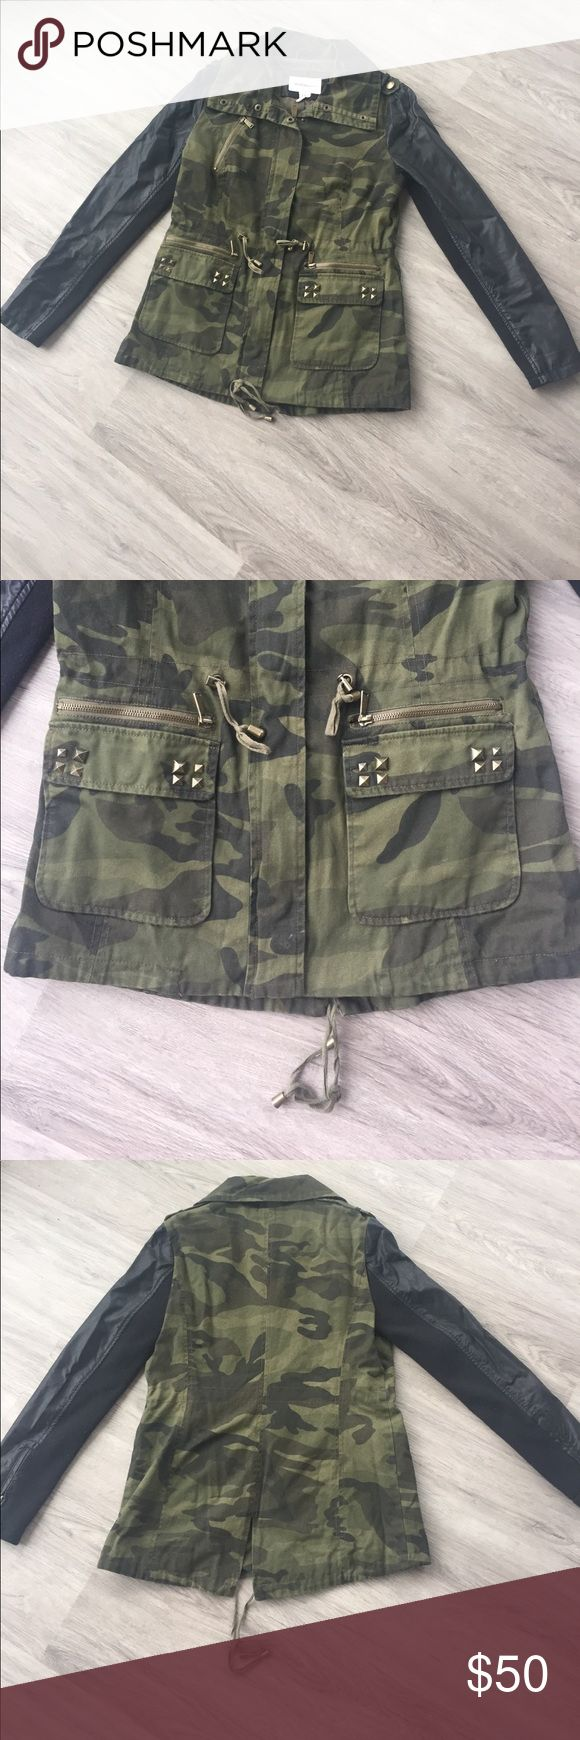 BCBGgeneration camo jacket SIZE: M // COLOR: camo // NAME: BG320220AN // FABRICATION: 100% cotton // NOTES FROM SELLER: cotton shell with faux leather sleeves. Drawstring waist. In good condition. BCBGeneration Jackets & Coats Utility Jackets